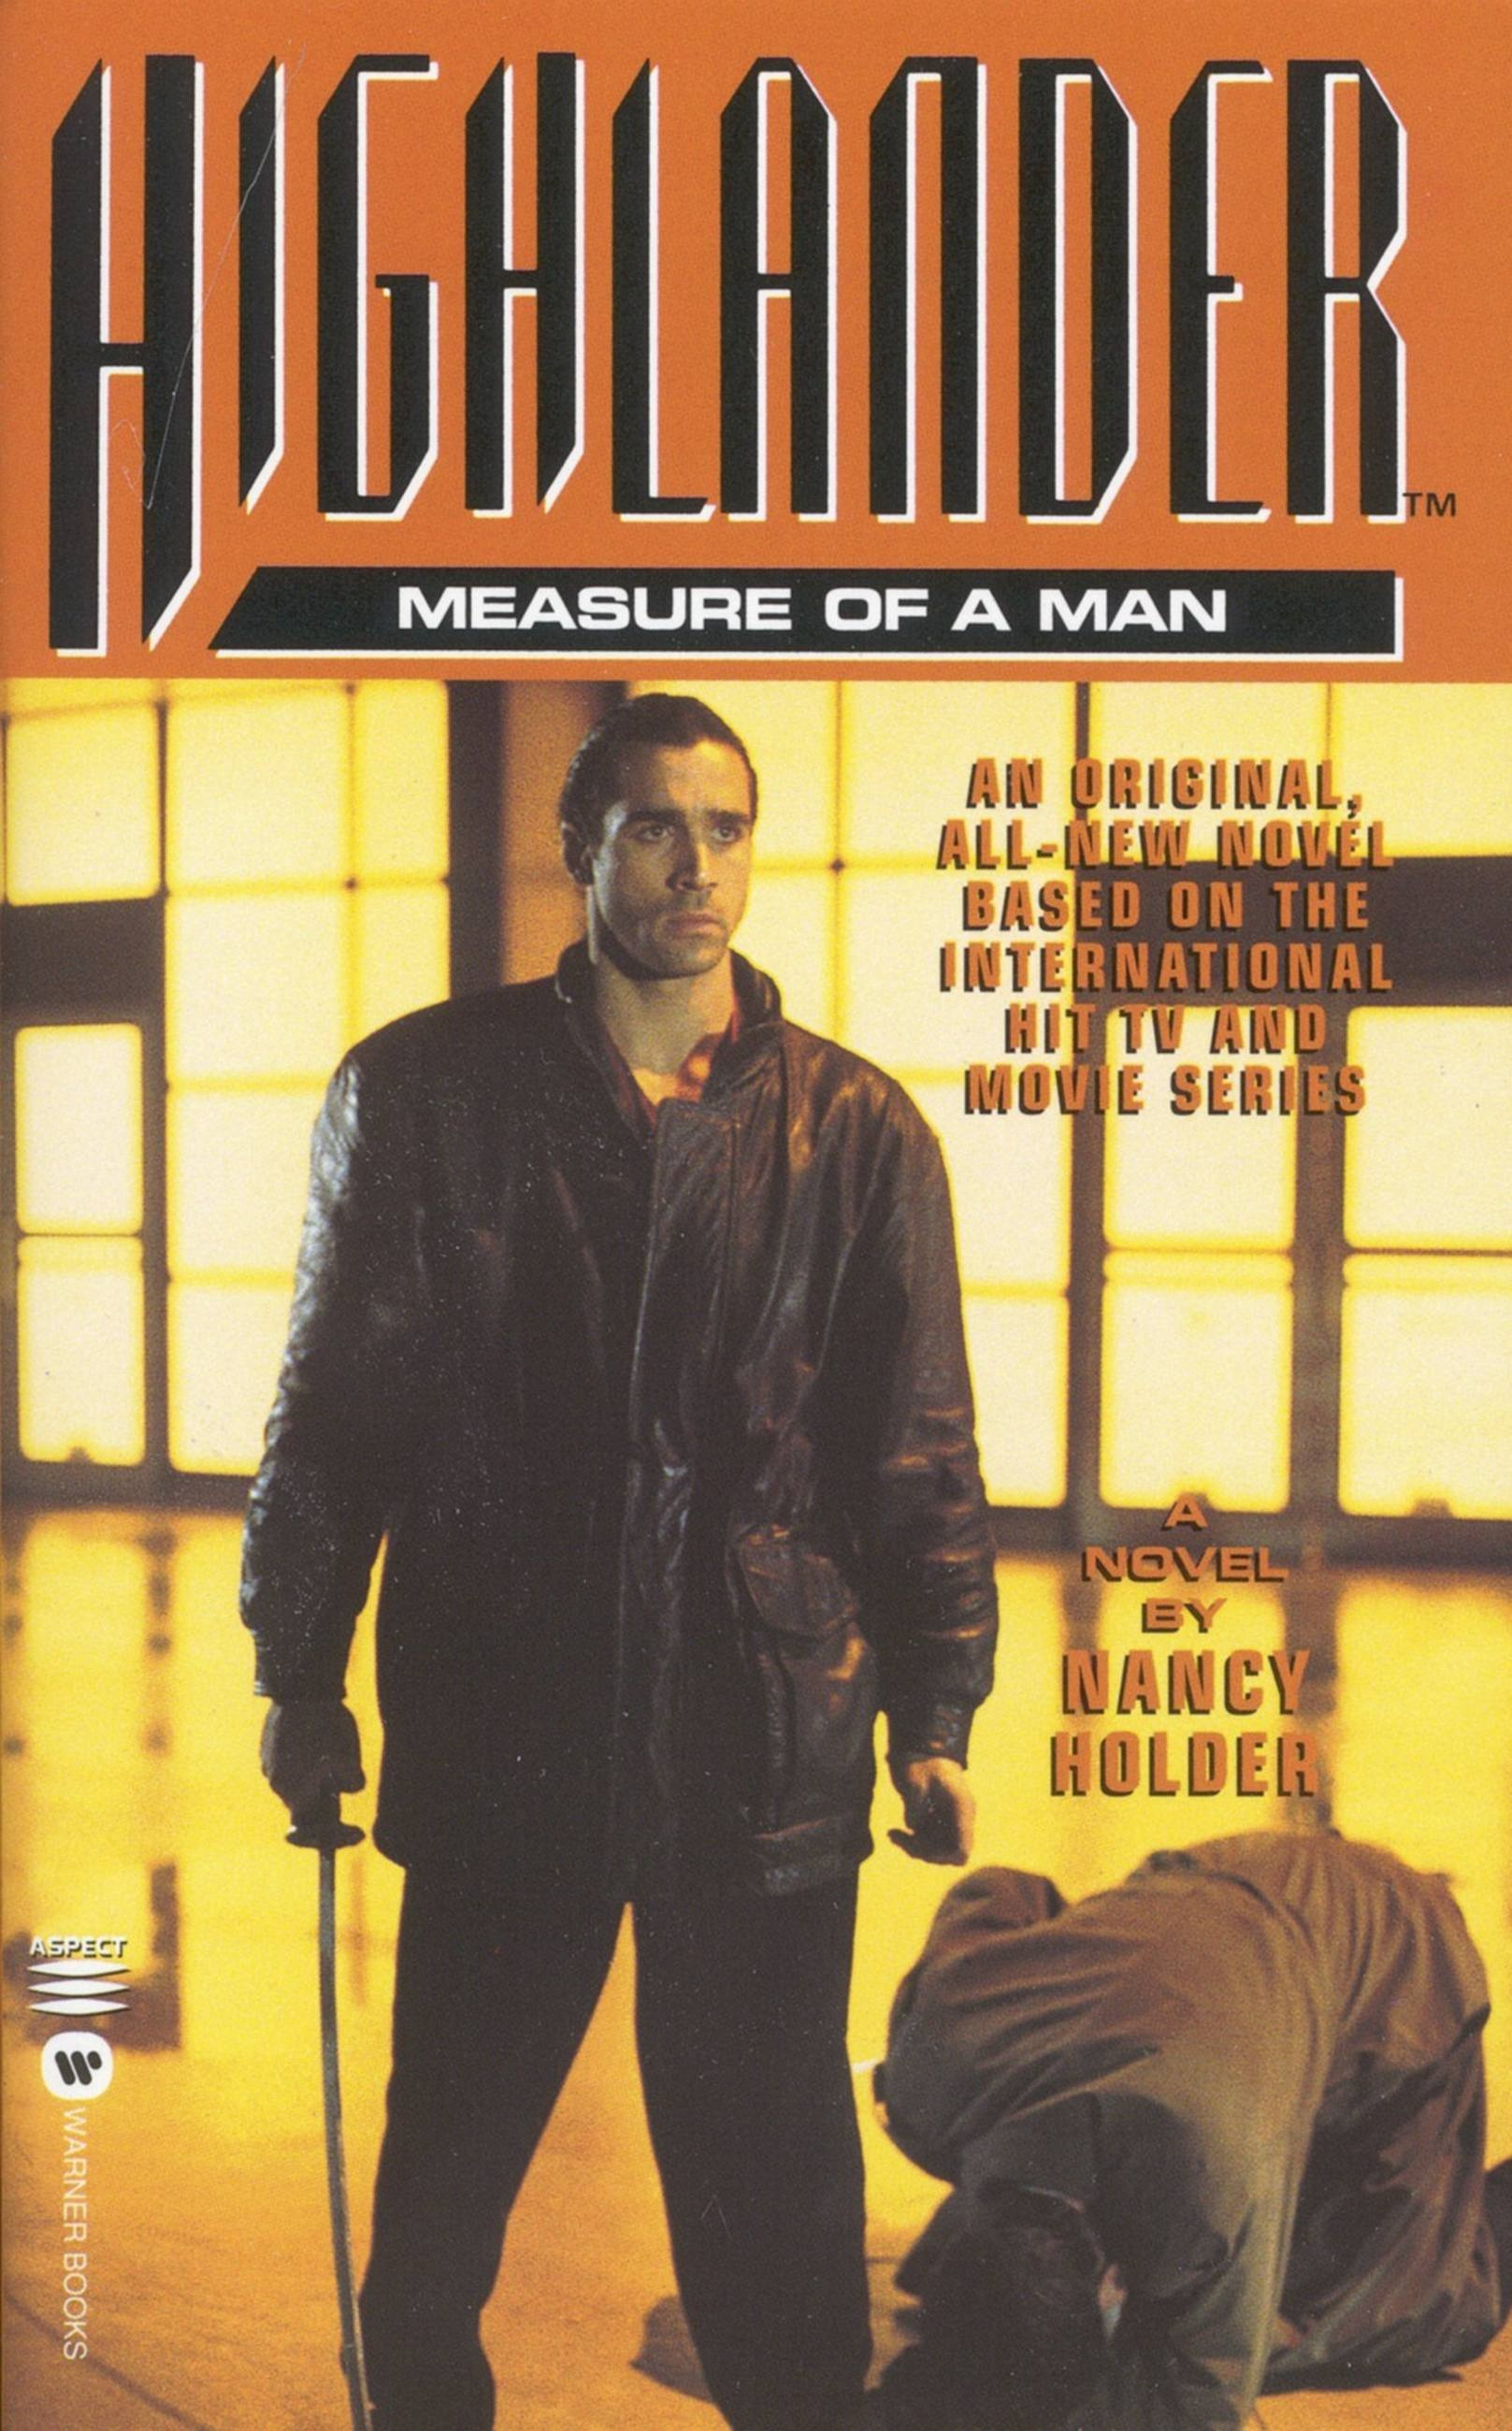 Highlander(TM): The Measure of a Man